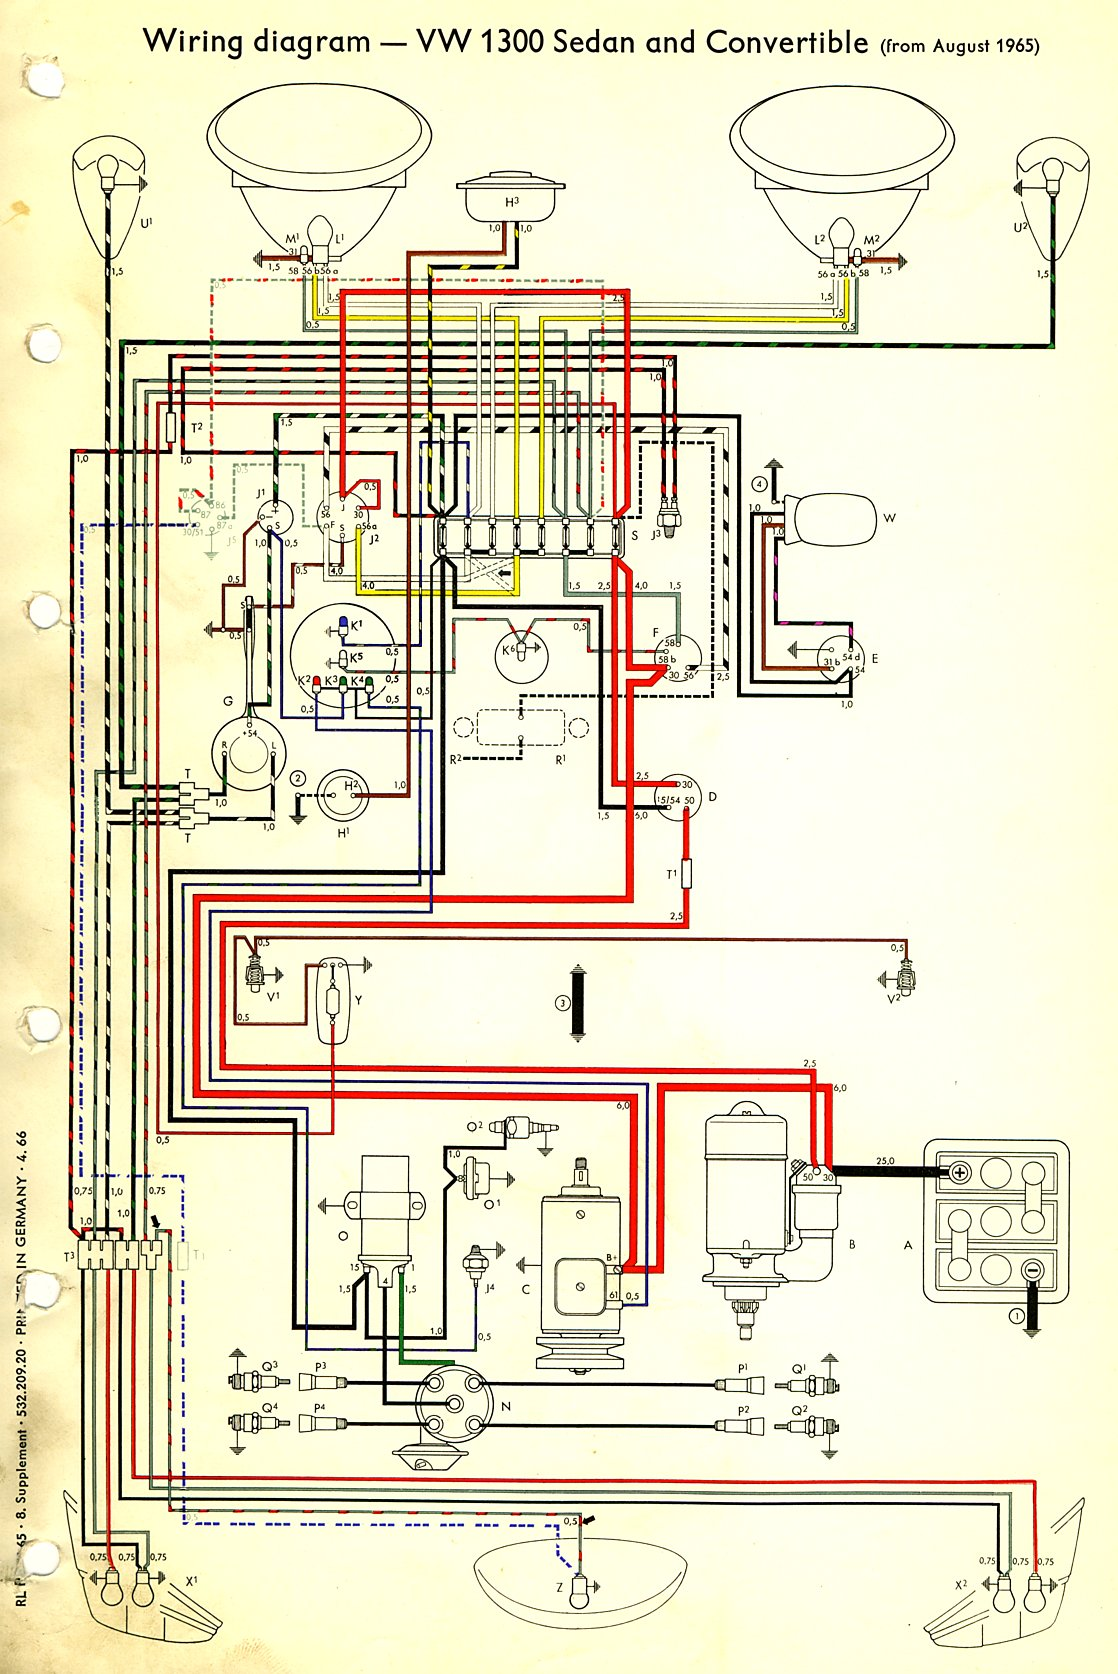 Vw Beetle 6 Volt Generator Wiring Diagram Books Of Schematic Images Gallery 71 Wire Auto Electrical Rh Psu Edu Co Fr Bitoku Me